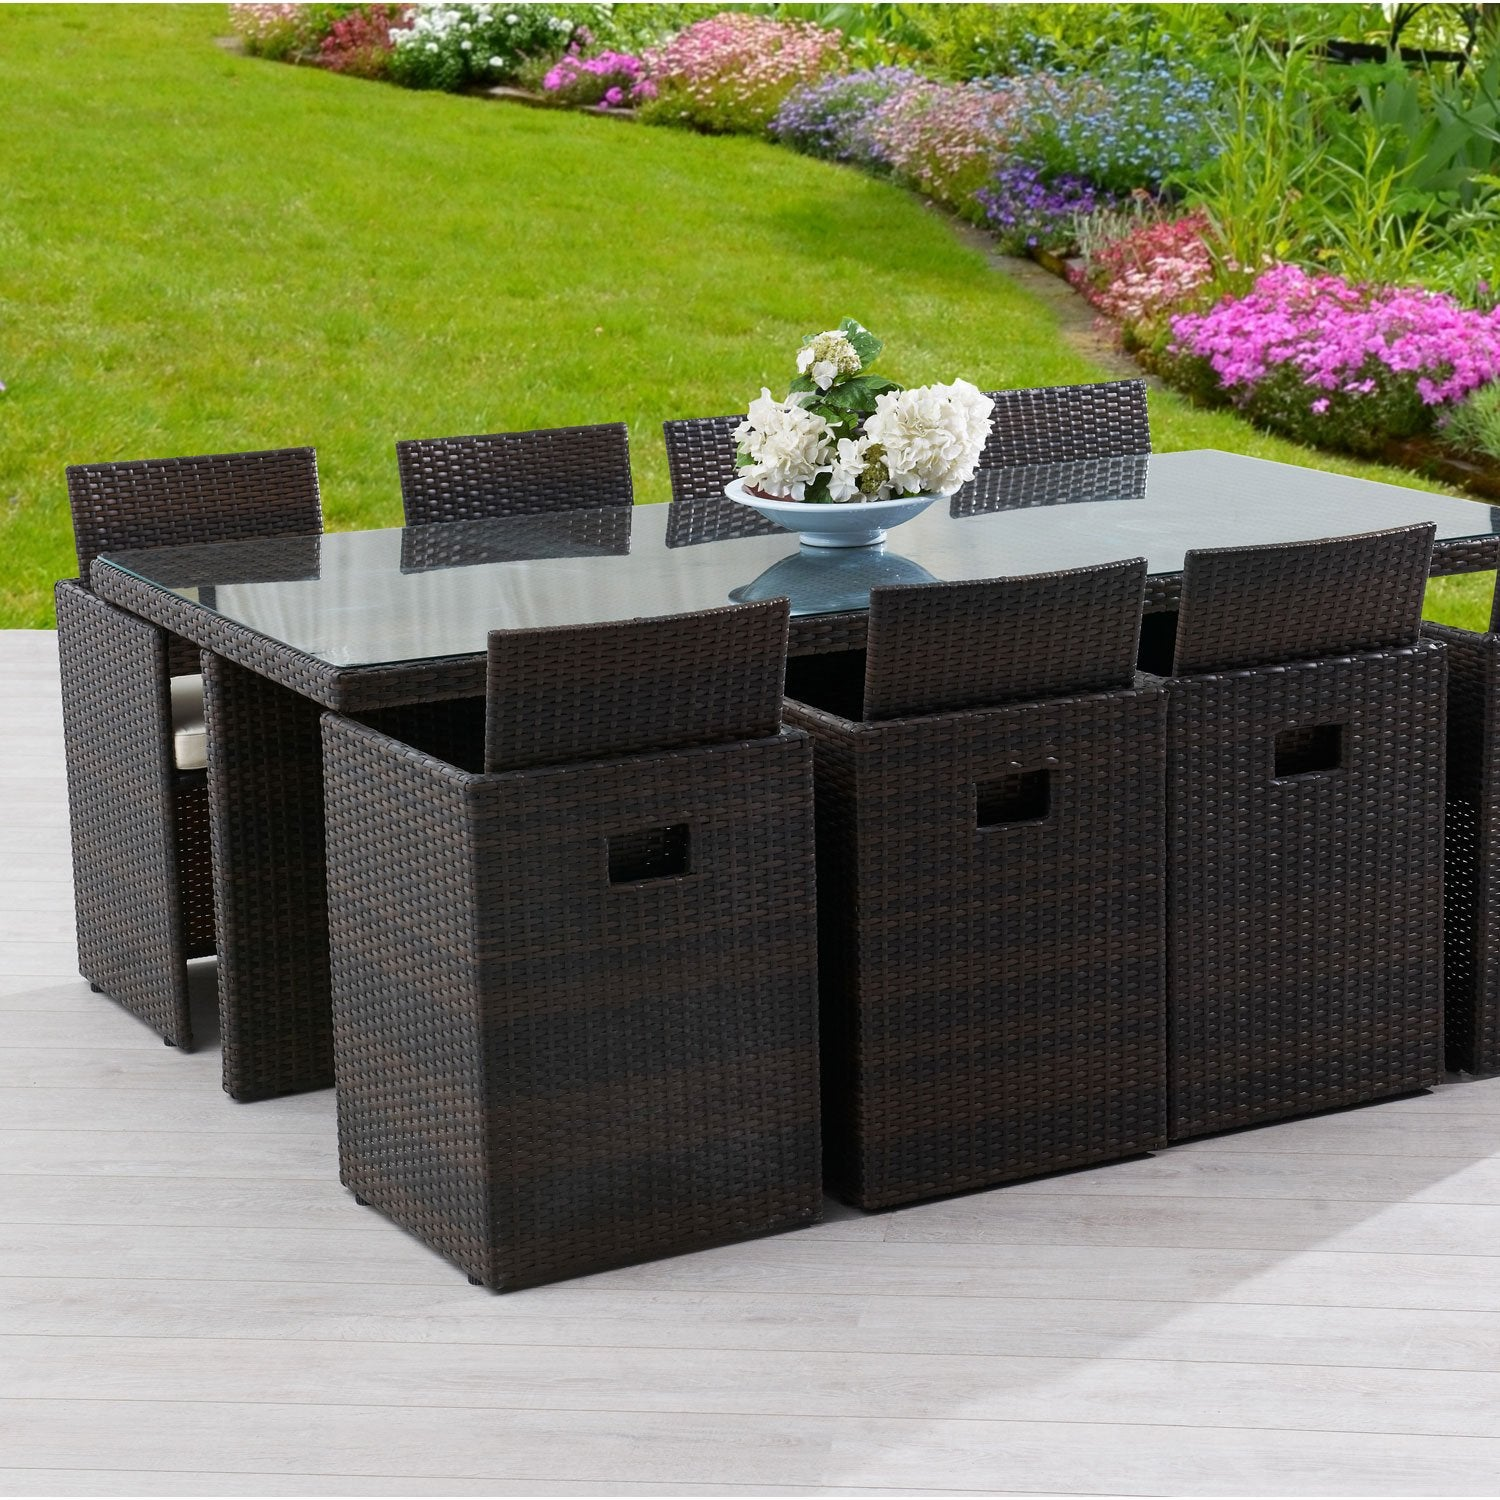 Salon de jardin encastrable r sine tress e marron 1 table for Salon jardin en resine